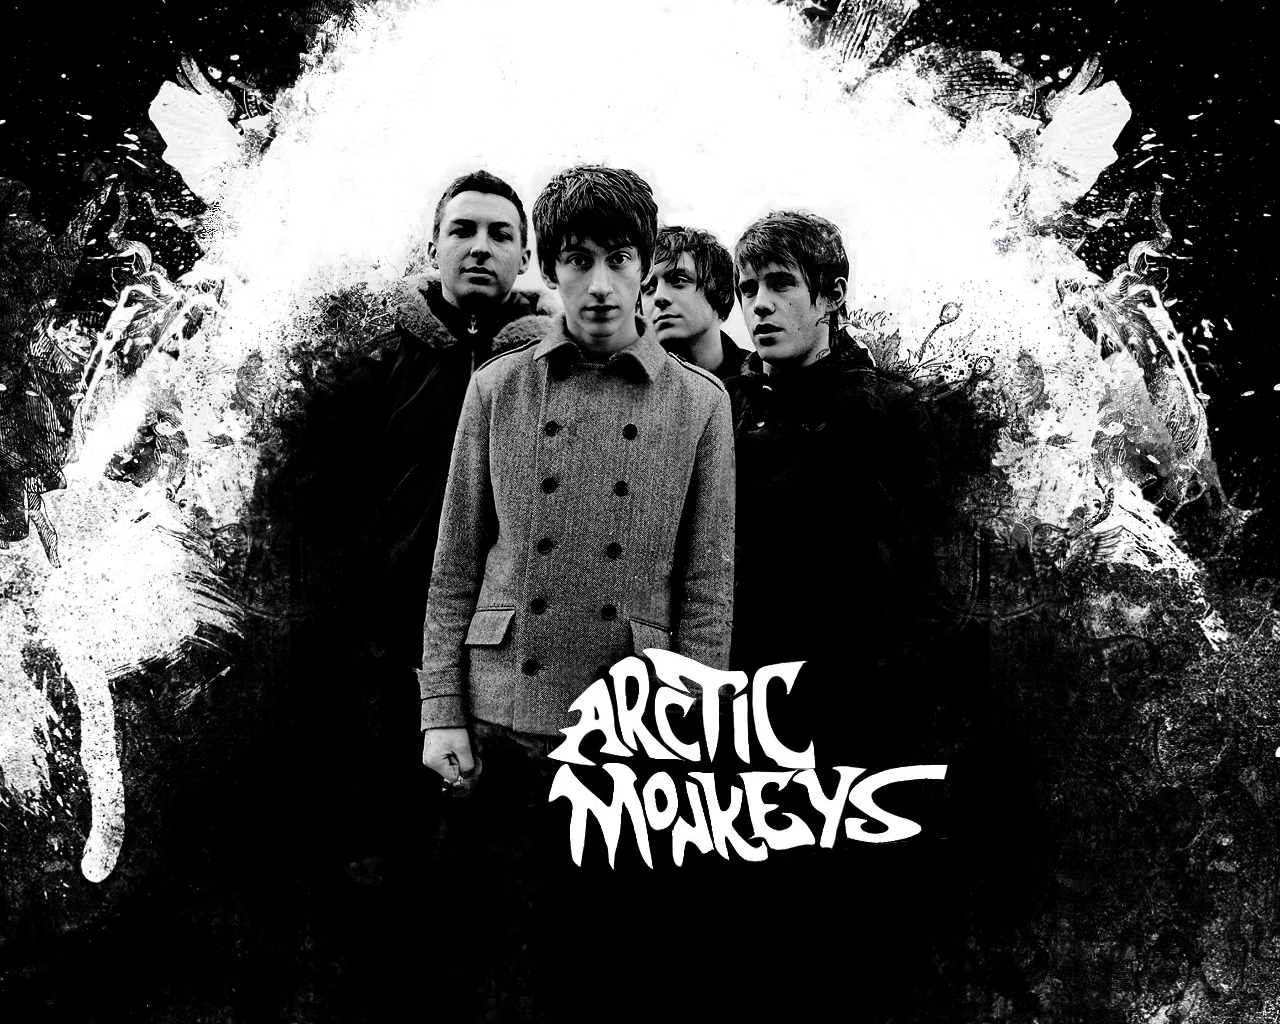 Arctic Monkeys